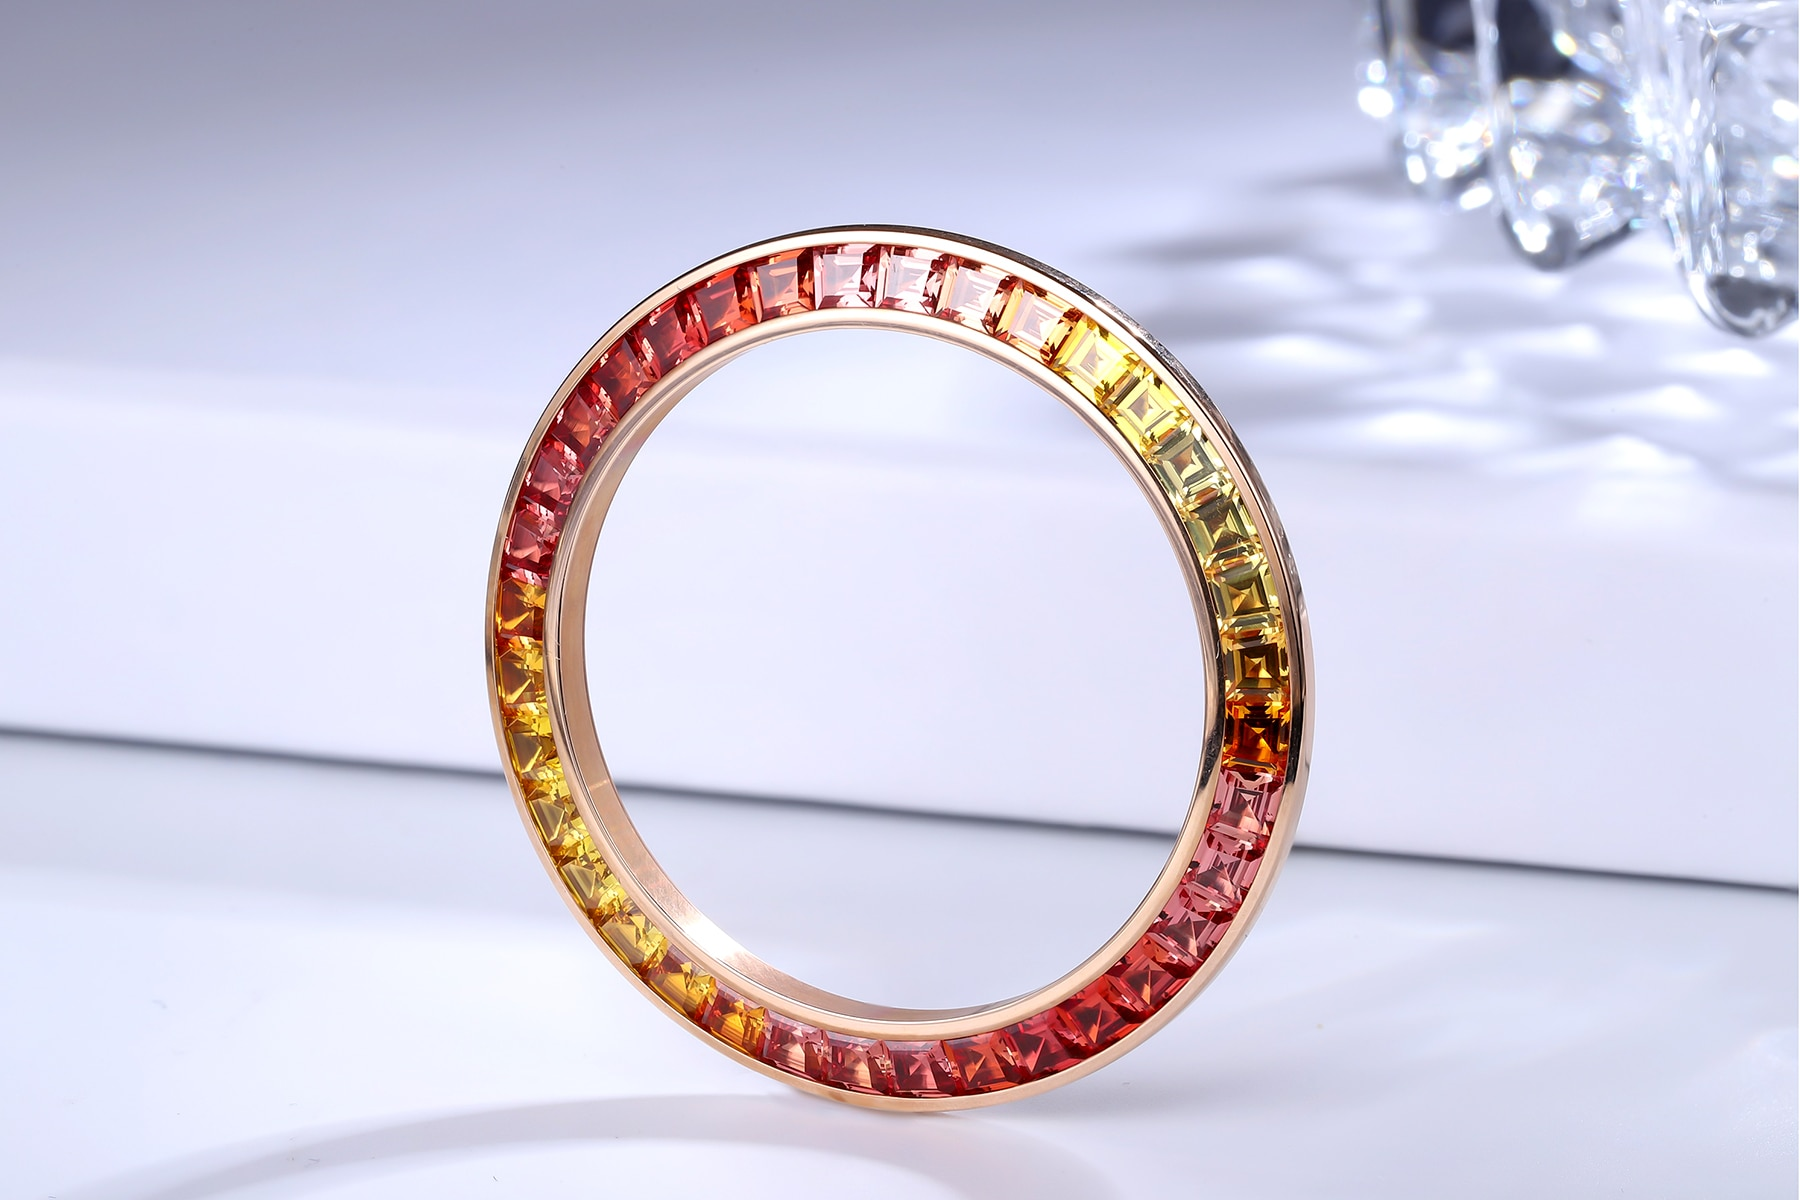 2021 Precision-cut Equal Size Perfect Color Gradiation Rainbow Created Sapphire Watch Bezel for Watchmakers